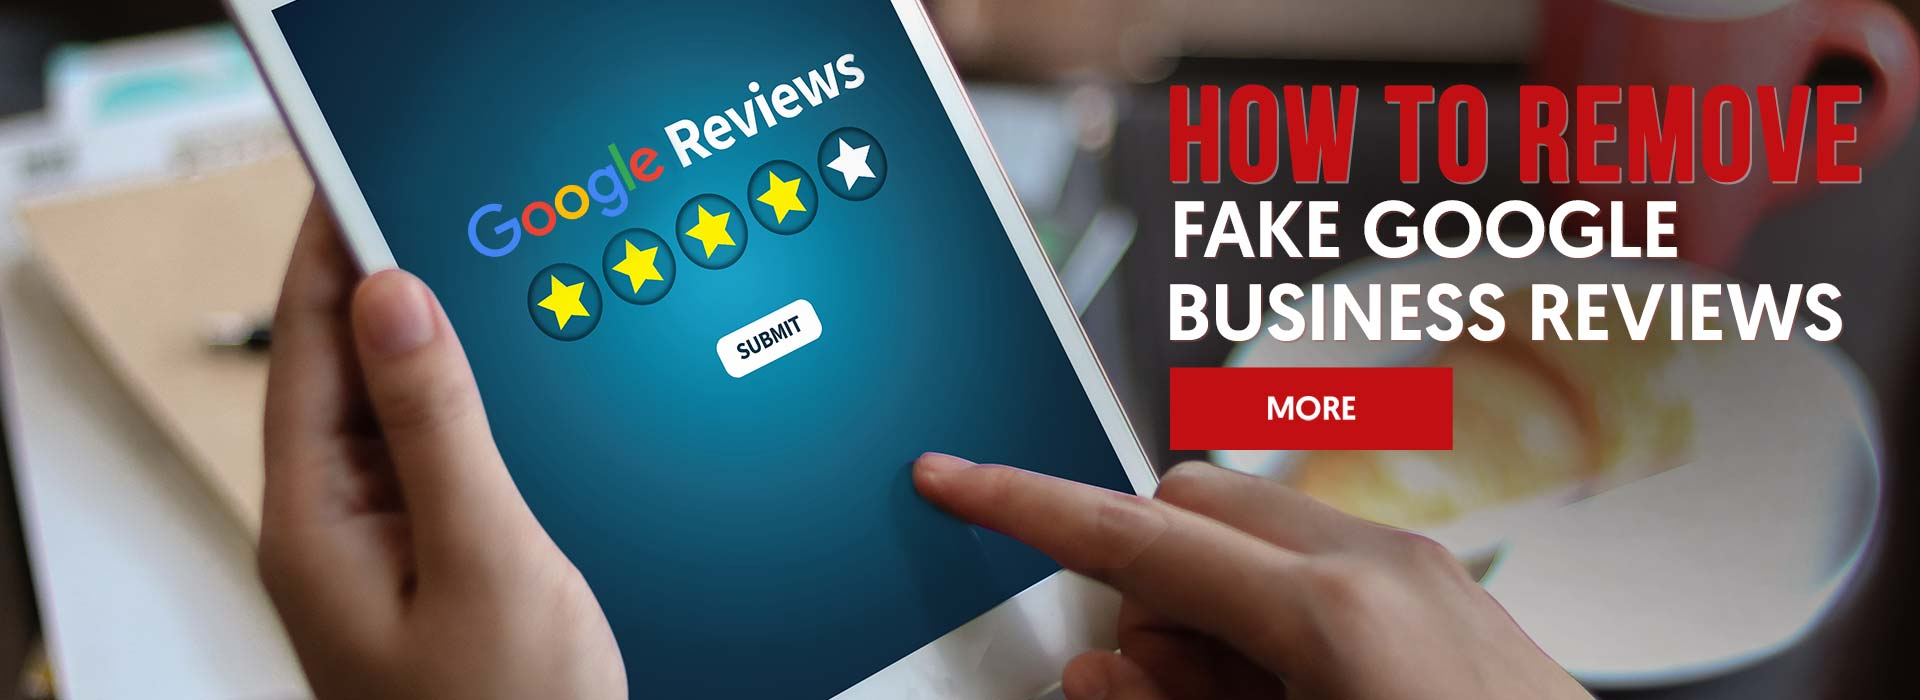 How to Remove Fake Google Business Reviews